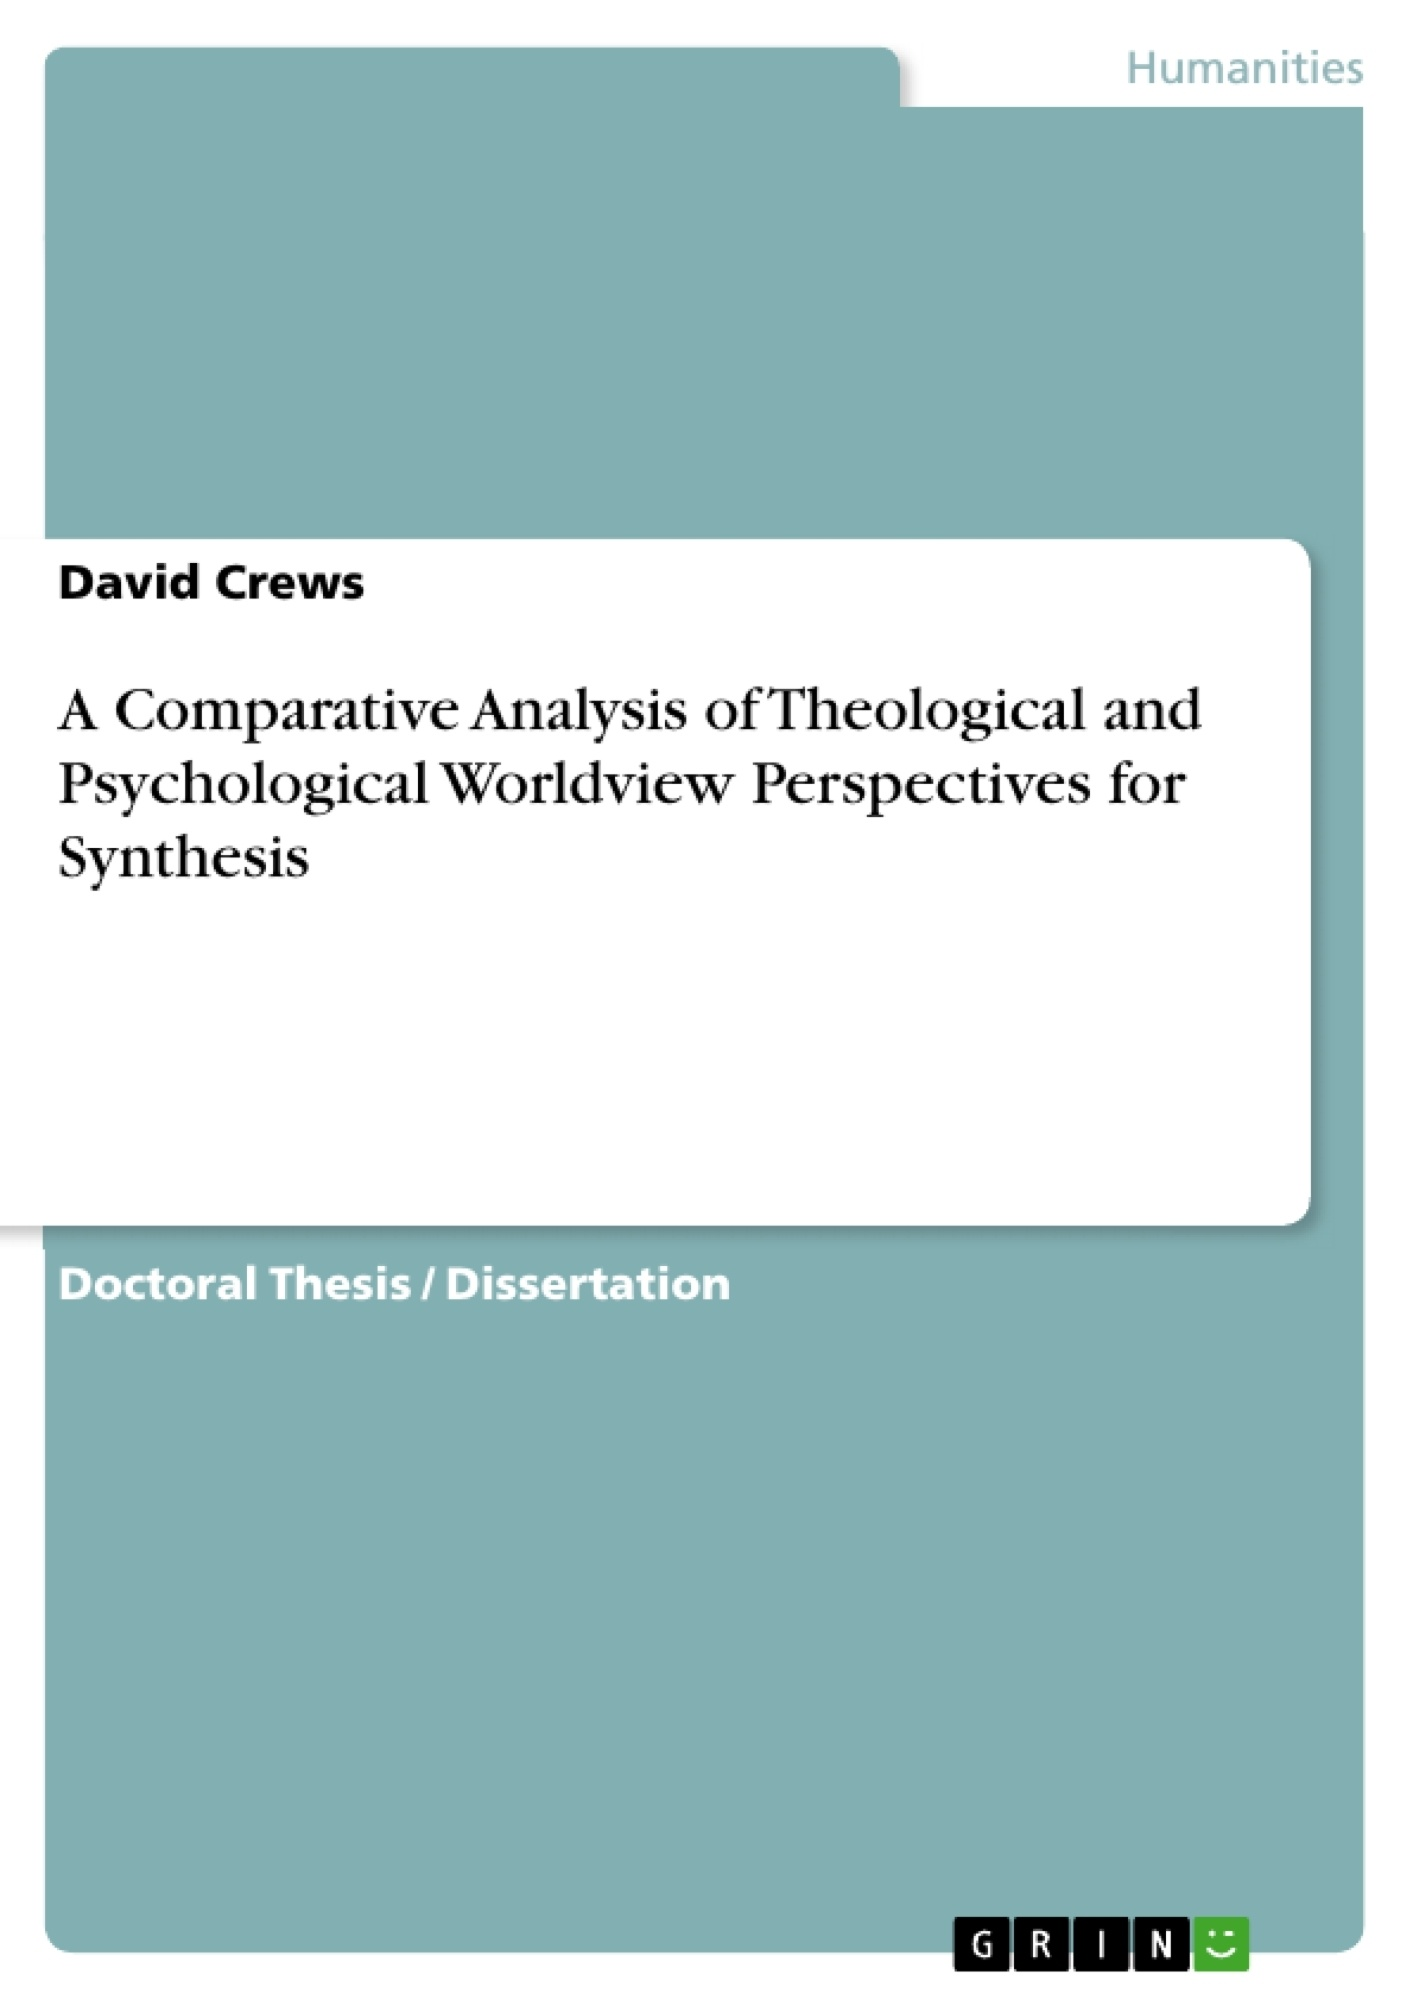 GRIN - A Comparative Analysis of Theological and Psychological Worldview  Perspectives for Synthesis